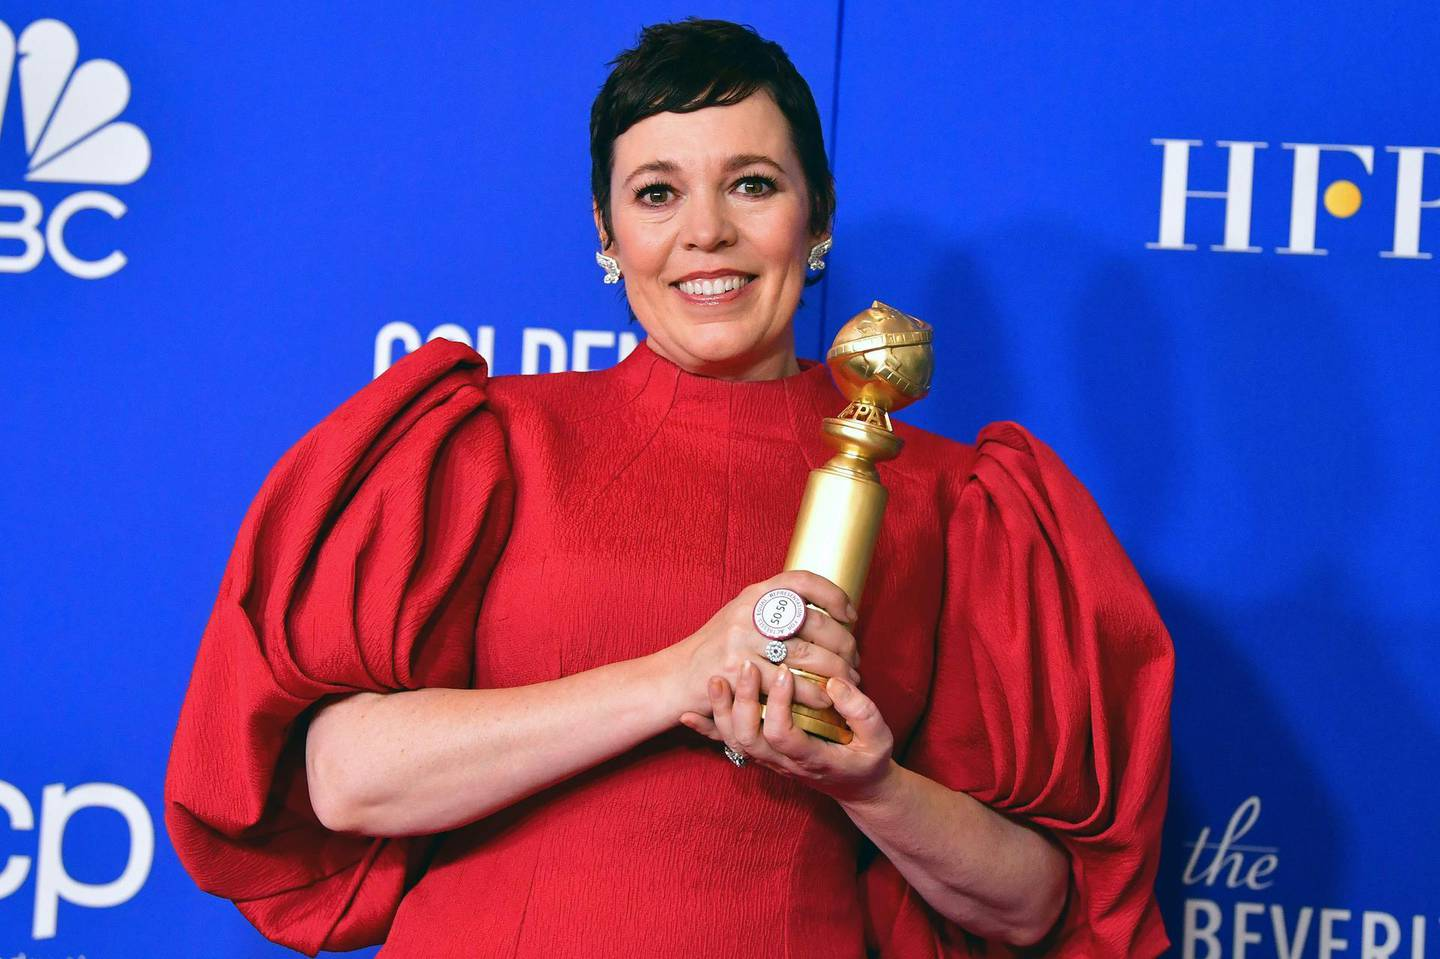 """TOPSHOT - British actress Olivia Colman poses in the press room with the award for Best Performance by an Actress In A Television Series - Drama for """"The Crown"""" during the 77th annual Golden Globe Awards on January 5, 2020, at The Beverly Hilton hotel in Beverly Hills, California. / AFP / FREDERIC J. BROWN"""